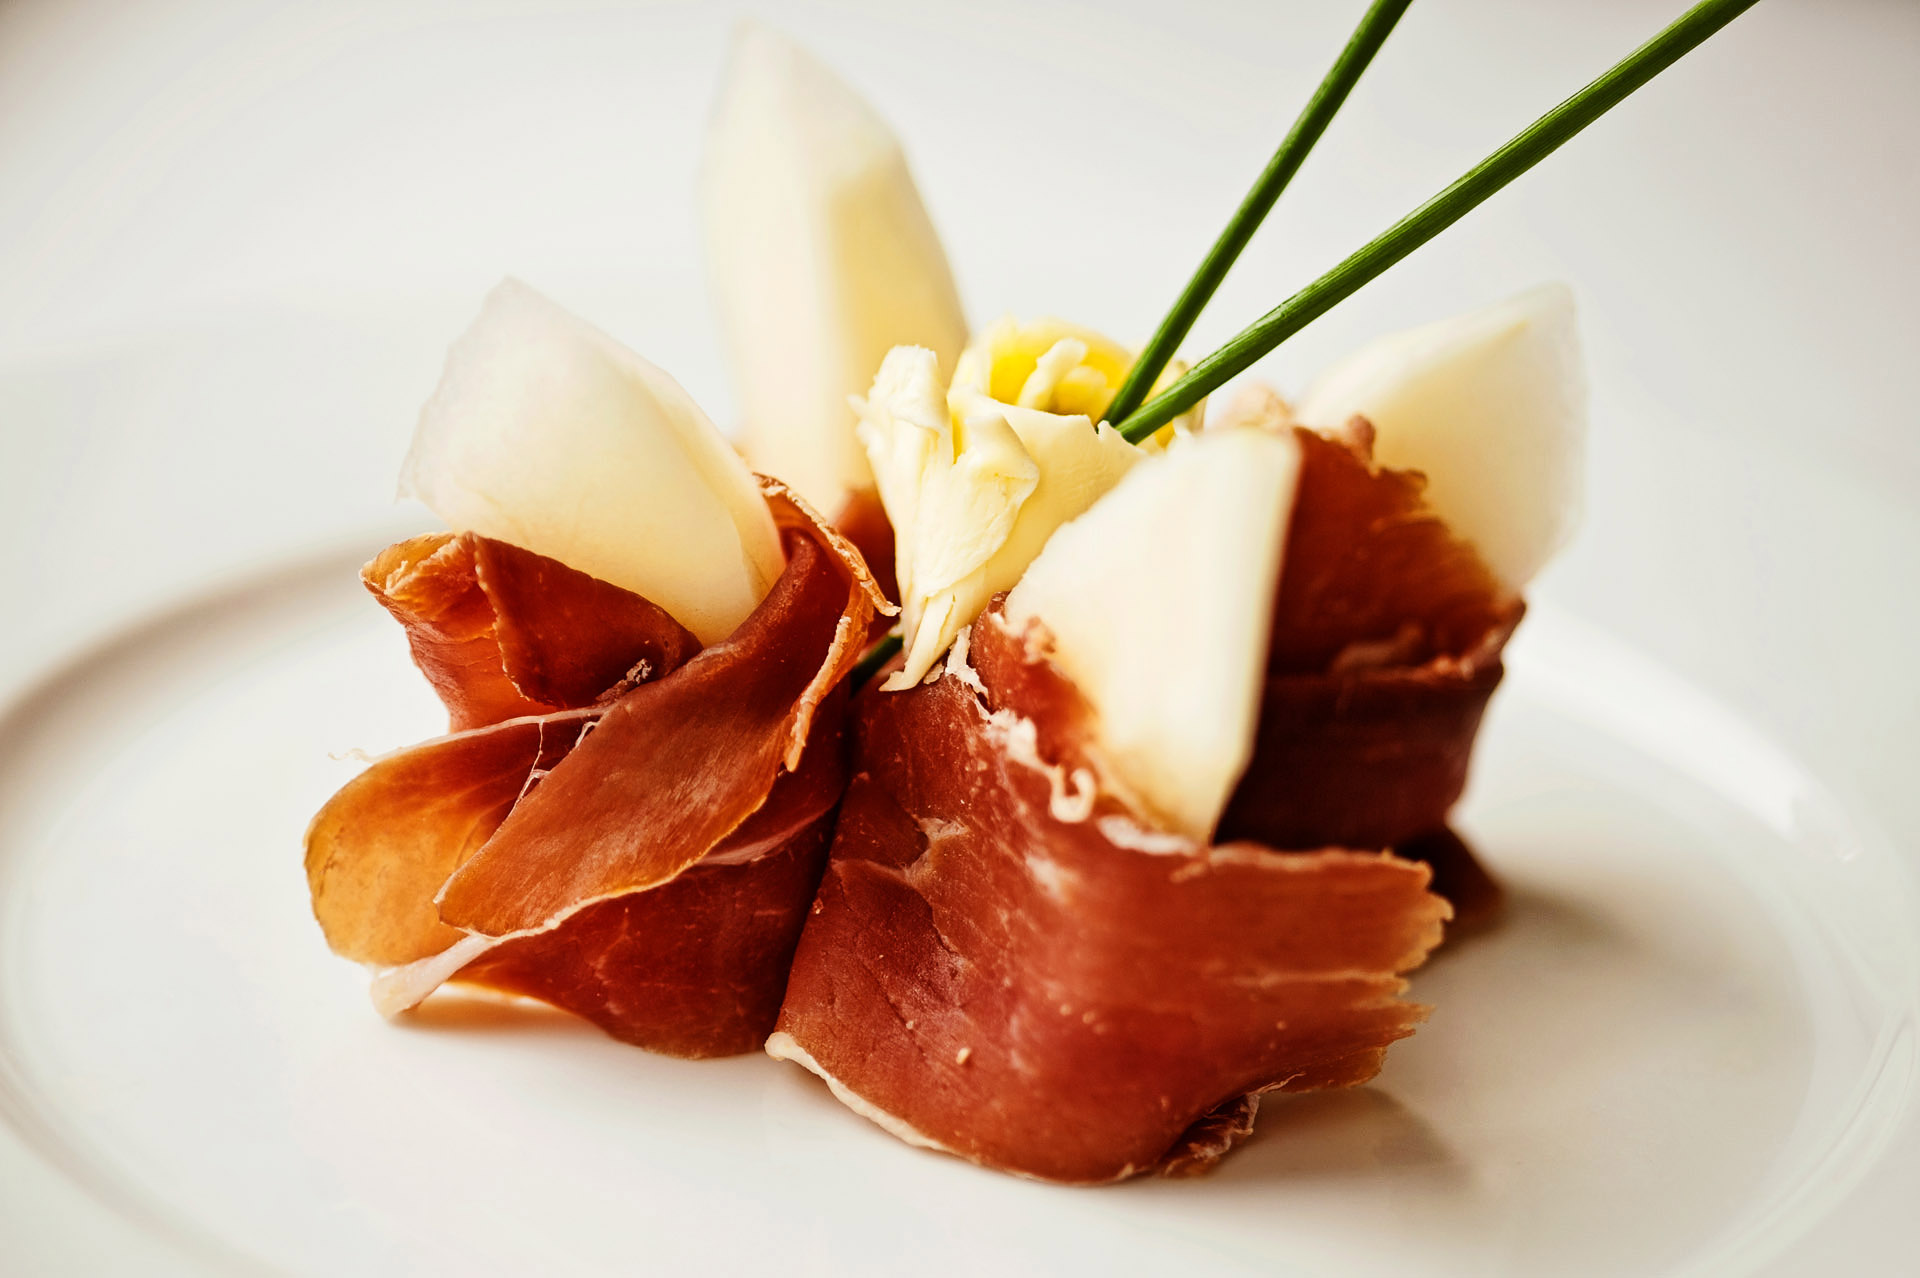 Food picture jamon with yellow melon